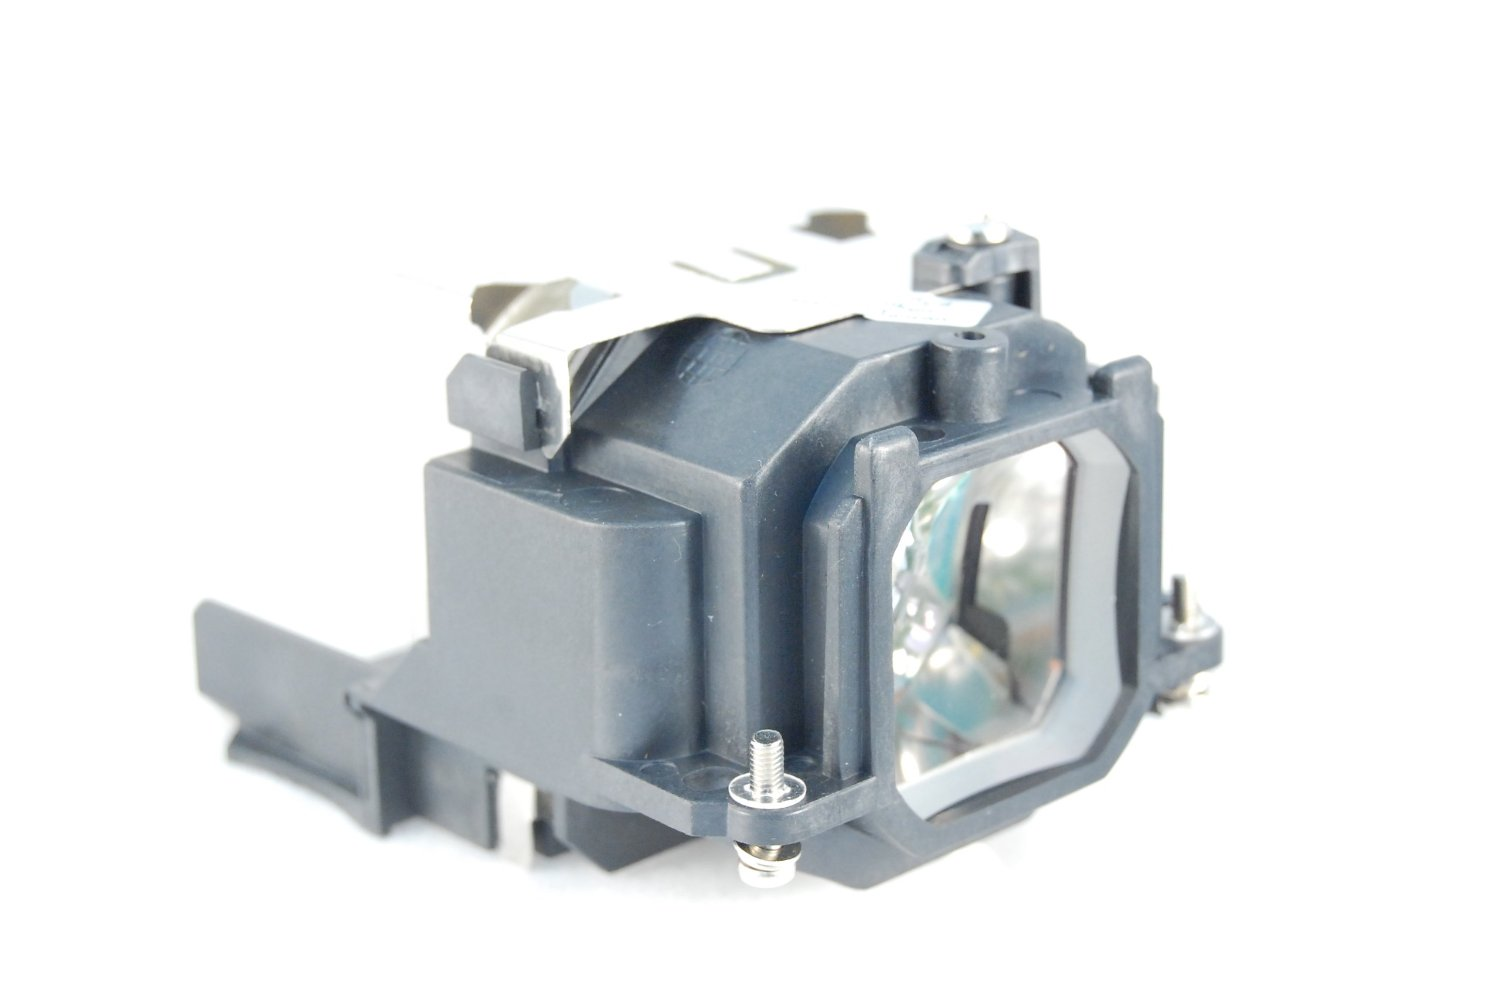 ET-LAB2 LAB2 For Panasonic PT-LB1 PT-LB2 PT-LB1EA PT-LB2EA PT-ST10 PT-LB3E Projector Lamp Bulb with housing projector lamp bulb et lab80 etlab80 for panasonic pt lb75 pt lb80 pt lw80ntu pt lb75ea pt lb75nt with housing